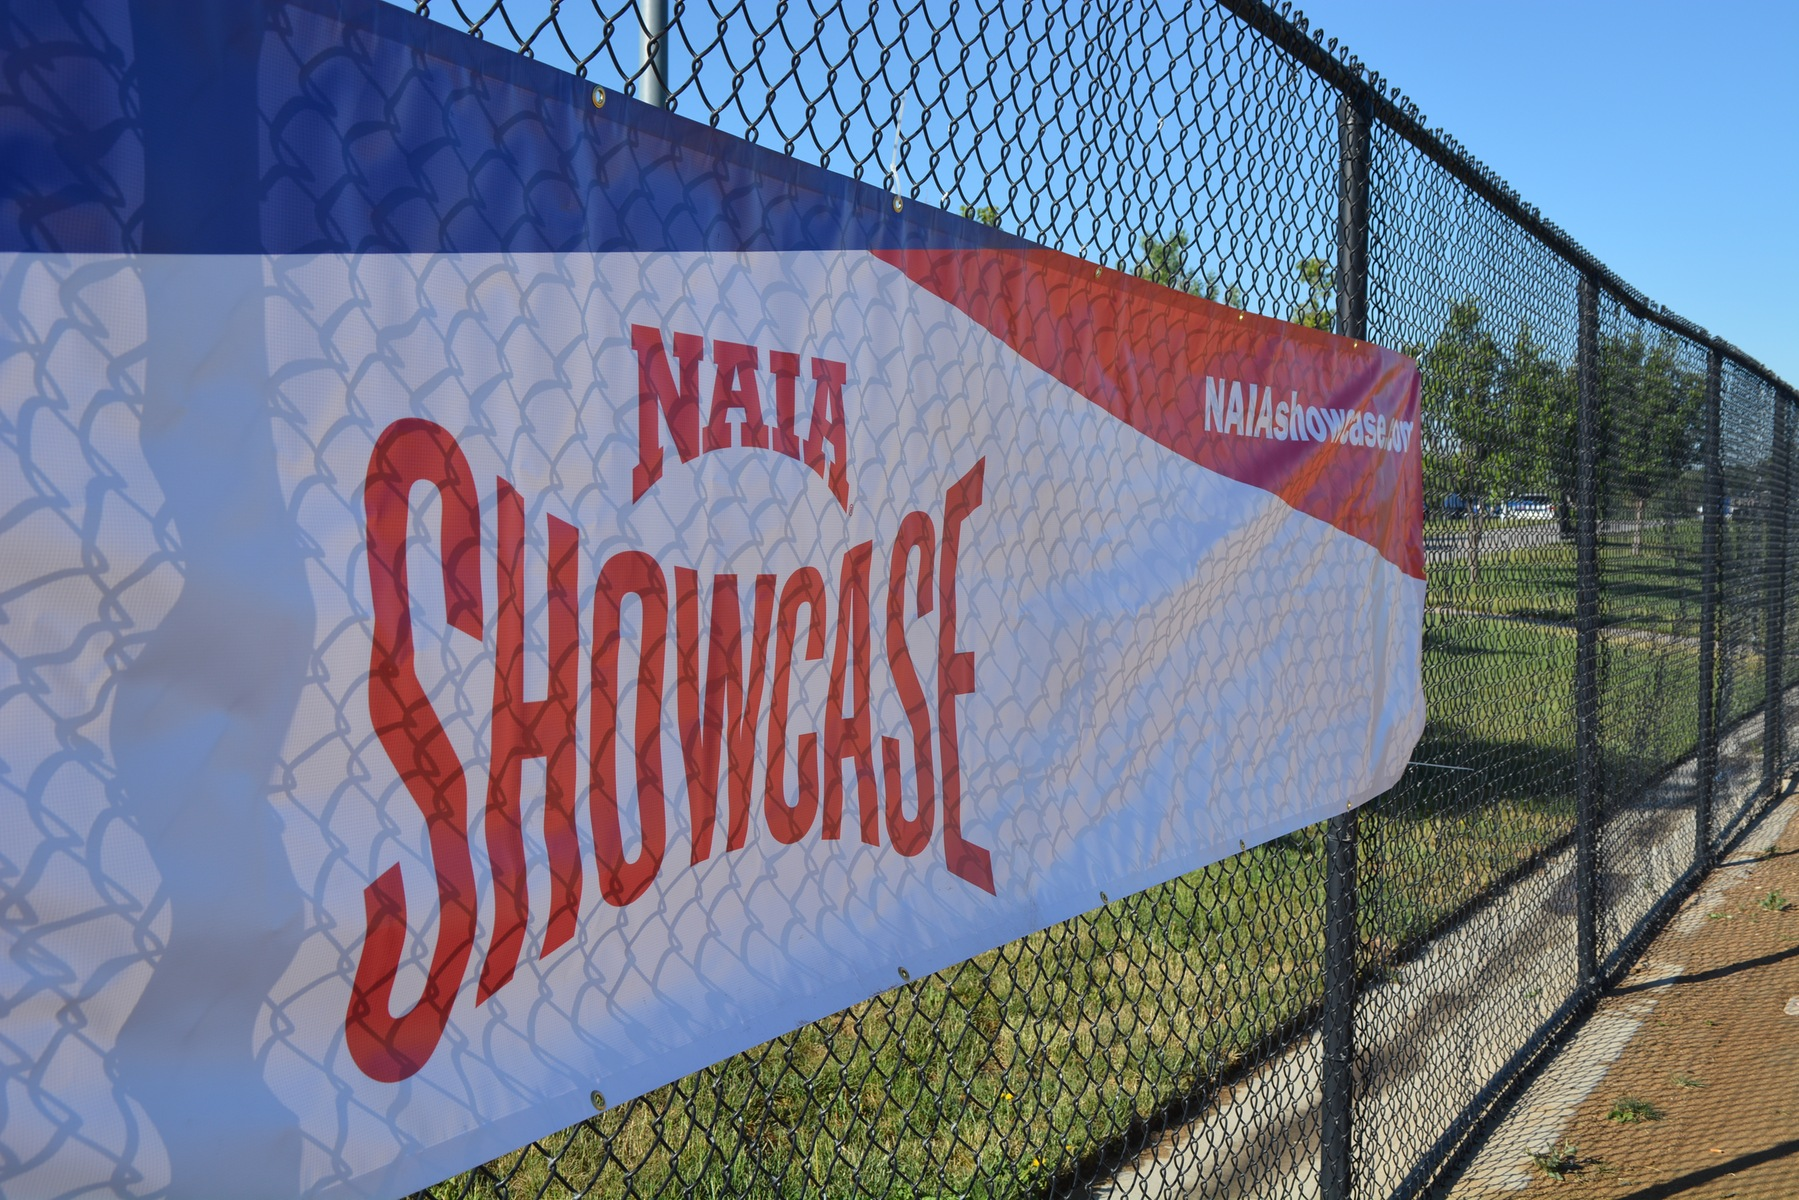 Showcase sign